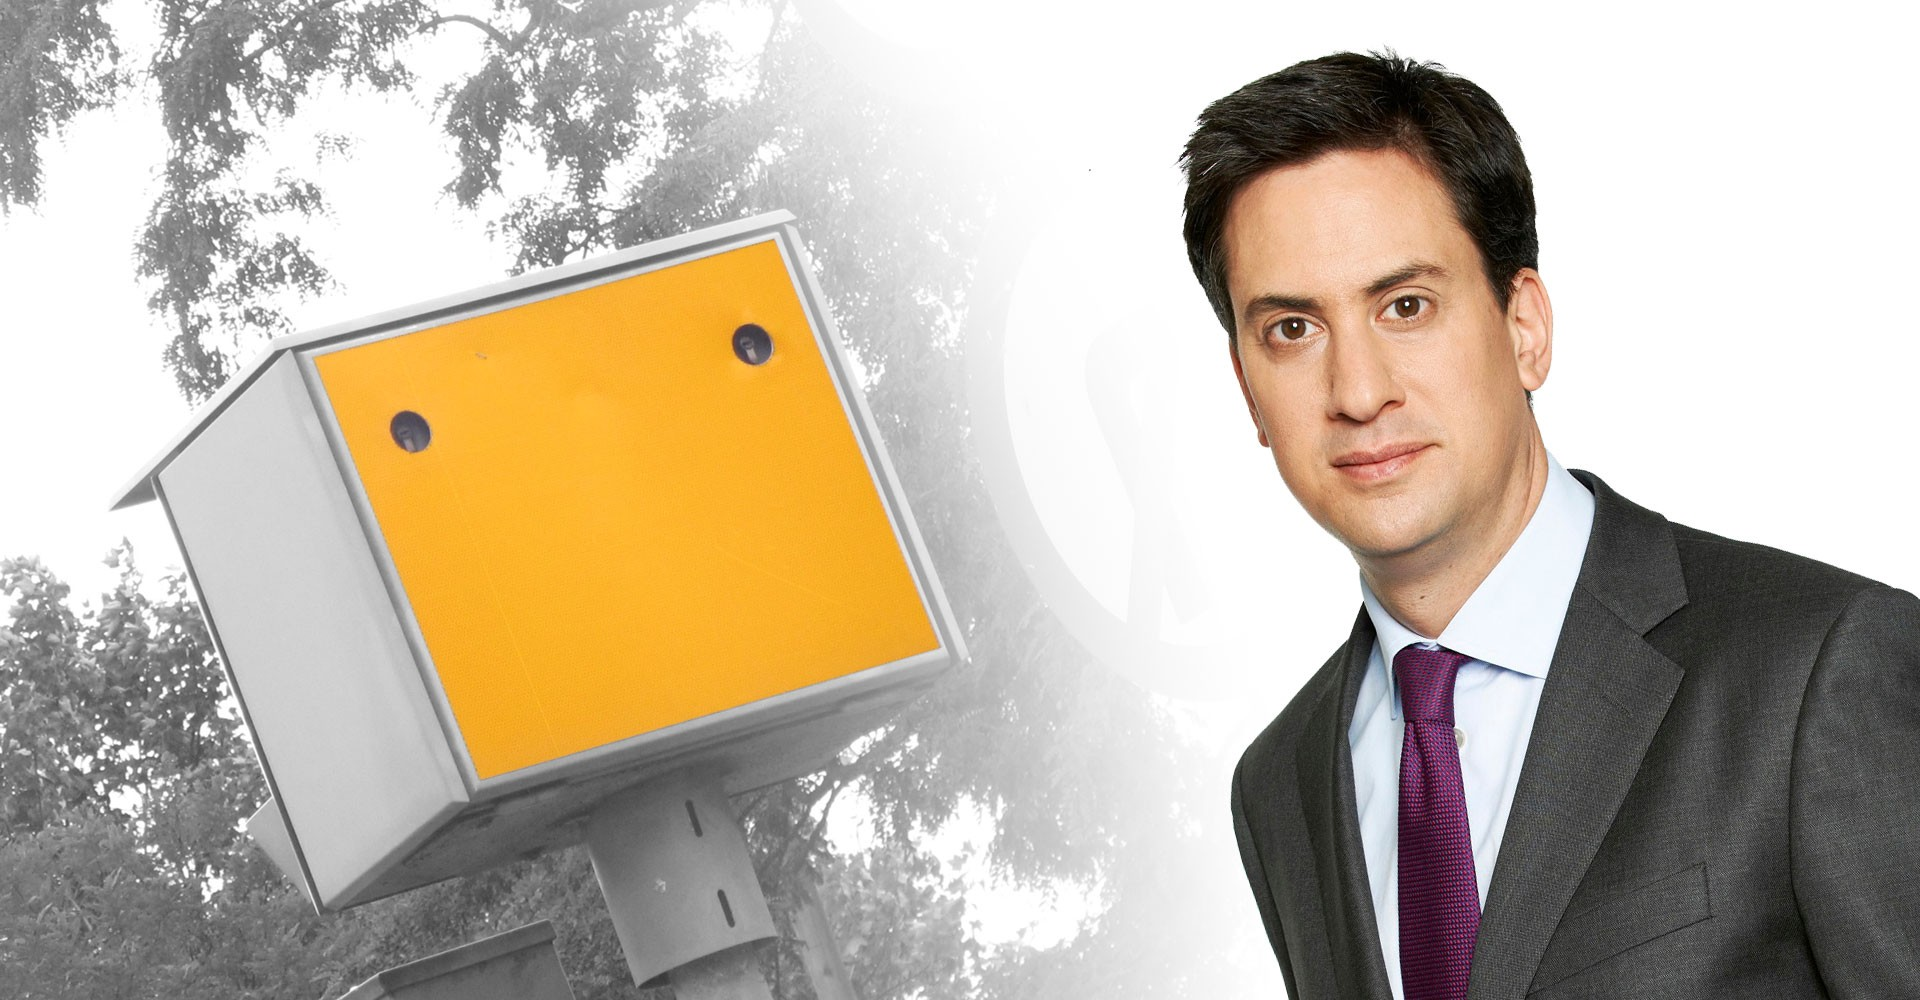 Miliband To Annihilate Speed Cameras Like Bacon Sarnies At A Photo Op